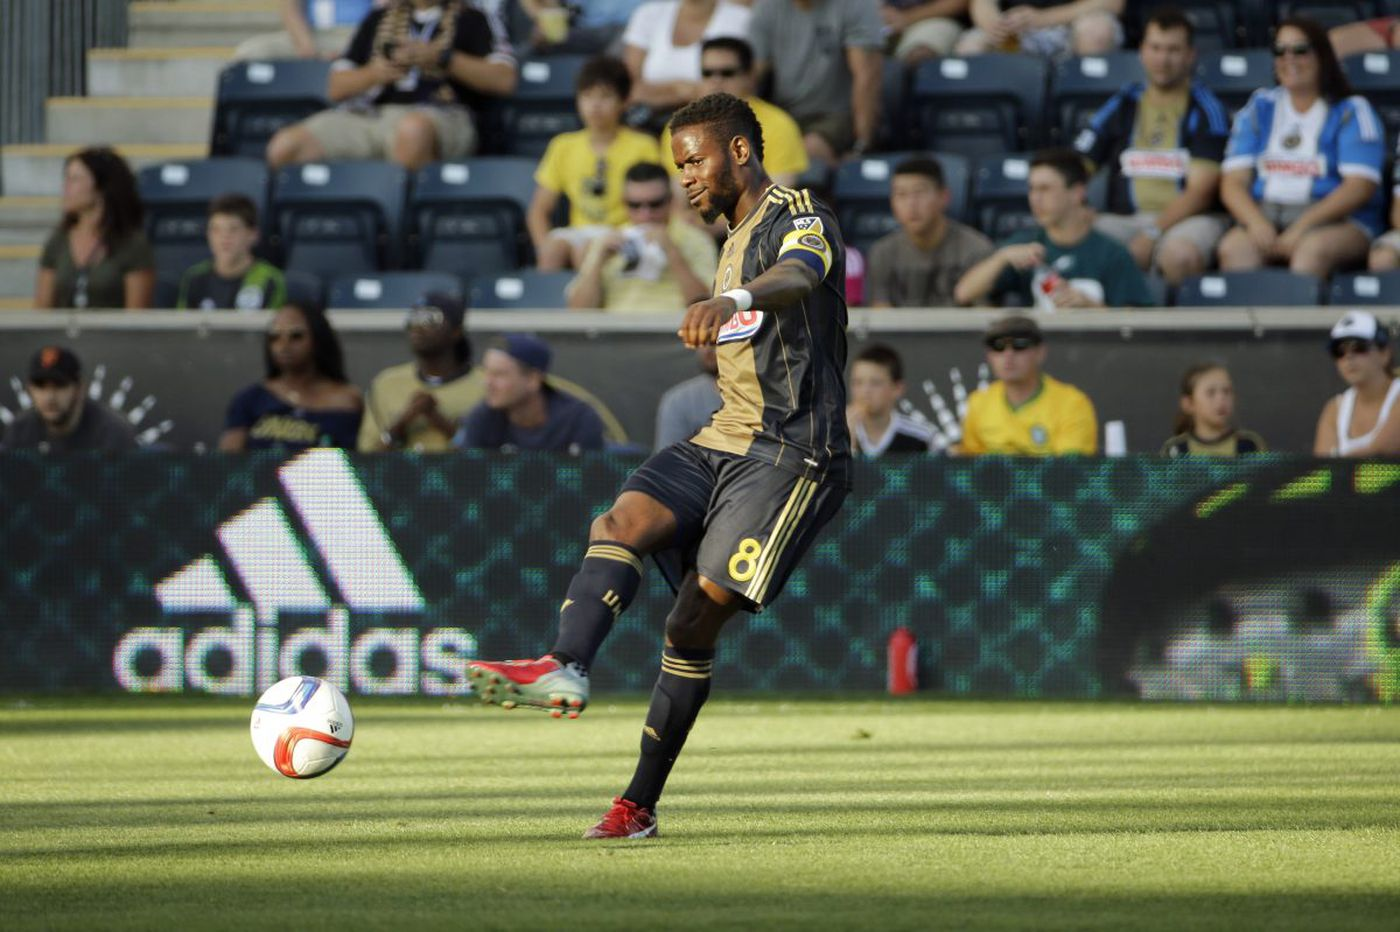 Union's Maurice Edu headed to Bethlehem, could play for Steel on Sunday